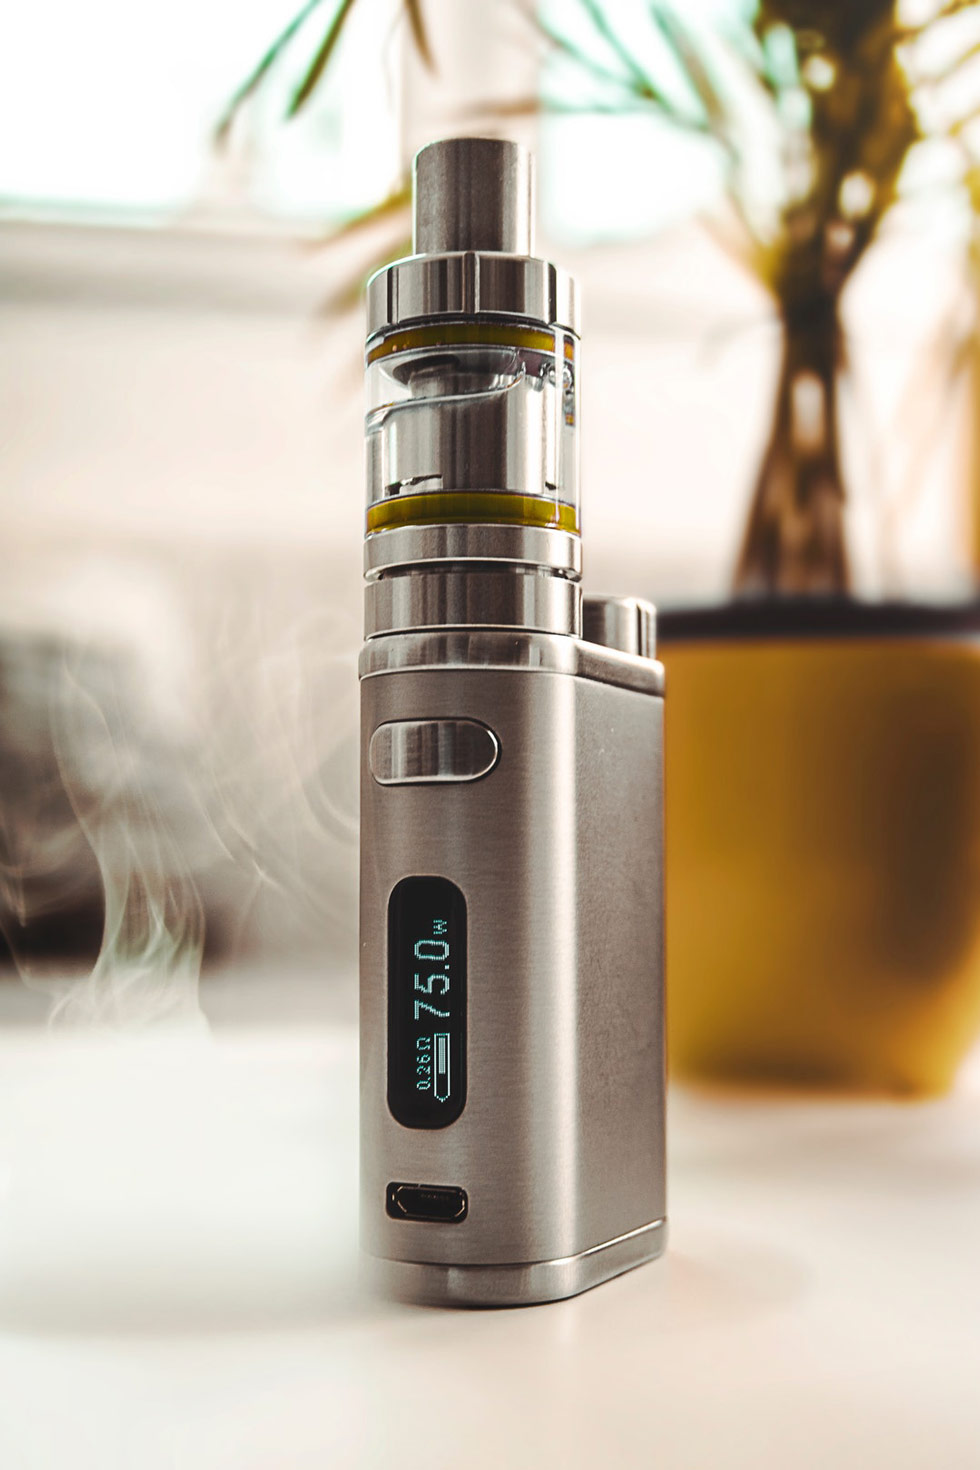 Simple Steps for Making Your Own DIY Vape Juice